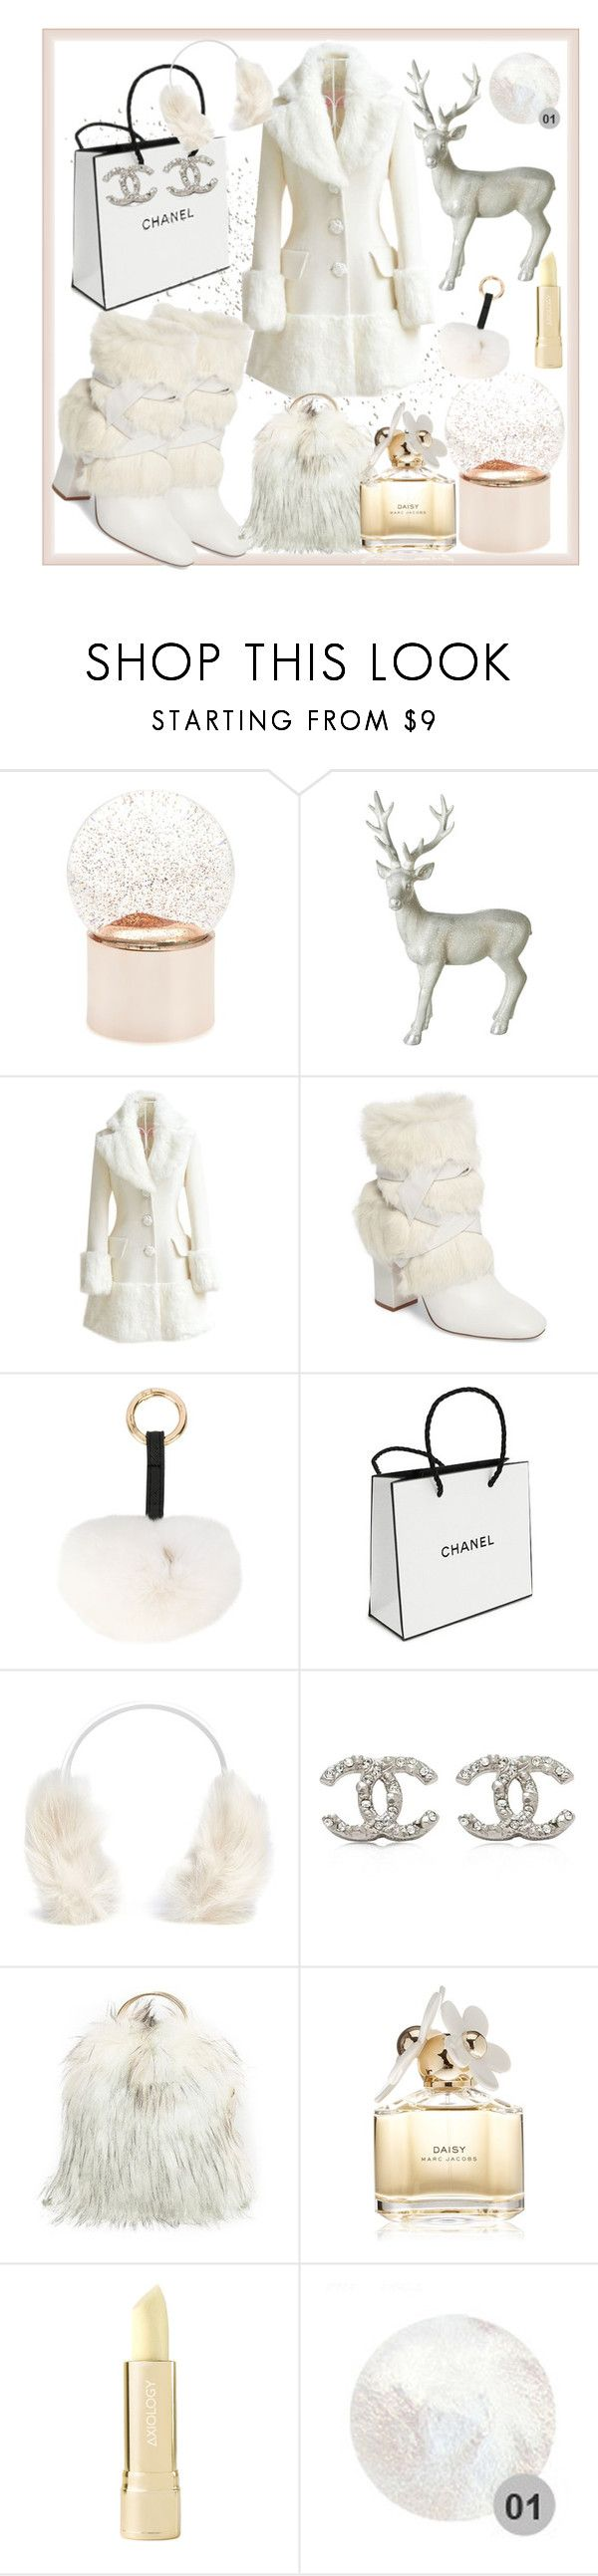 """""""winter boots"""" by jannatqtr ❤ liked on Polyvore featuring Nordstrom, Parlane, WithChic, Alexandre Birman, Yves Salomon, Chanel, Karl Donoghue, Marc Jacobs and Axiology"""